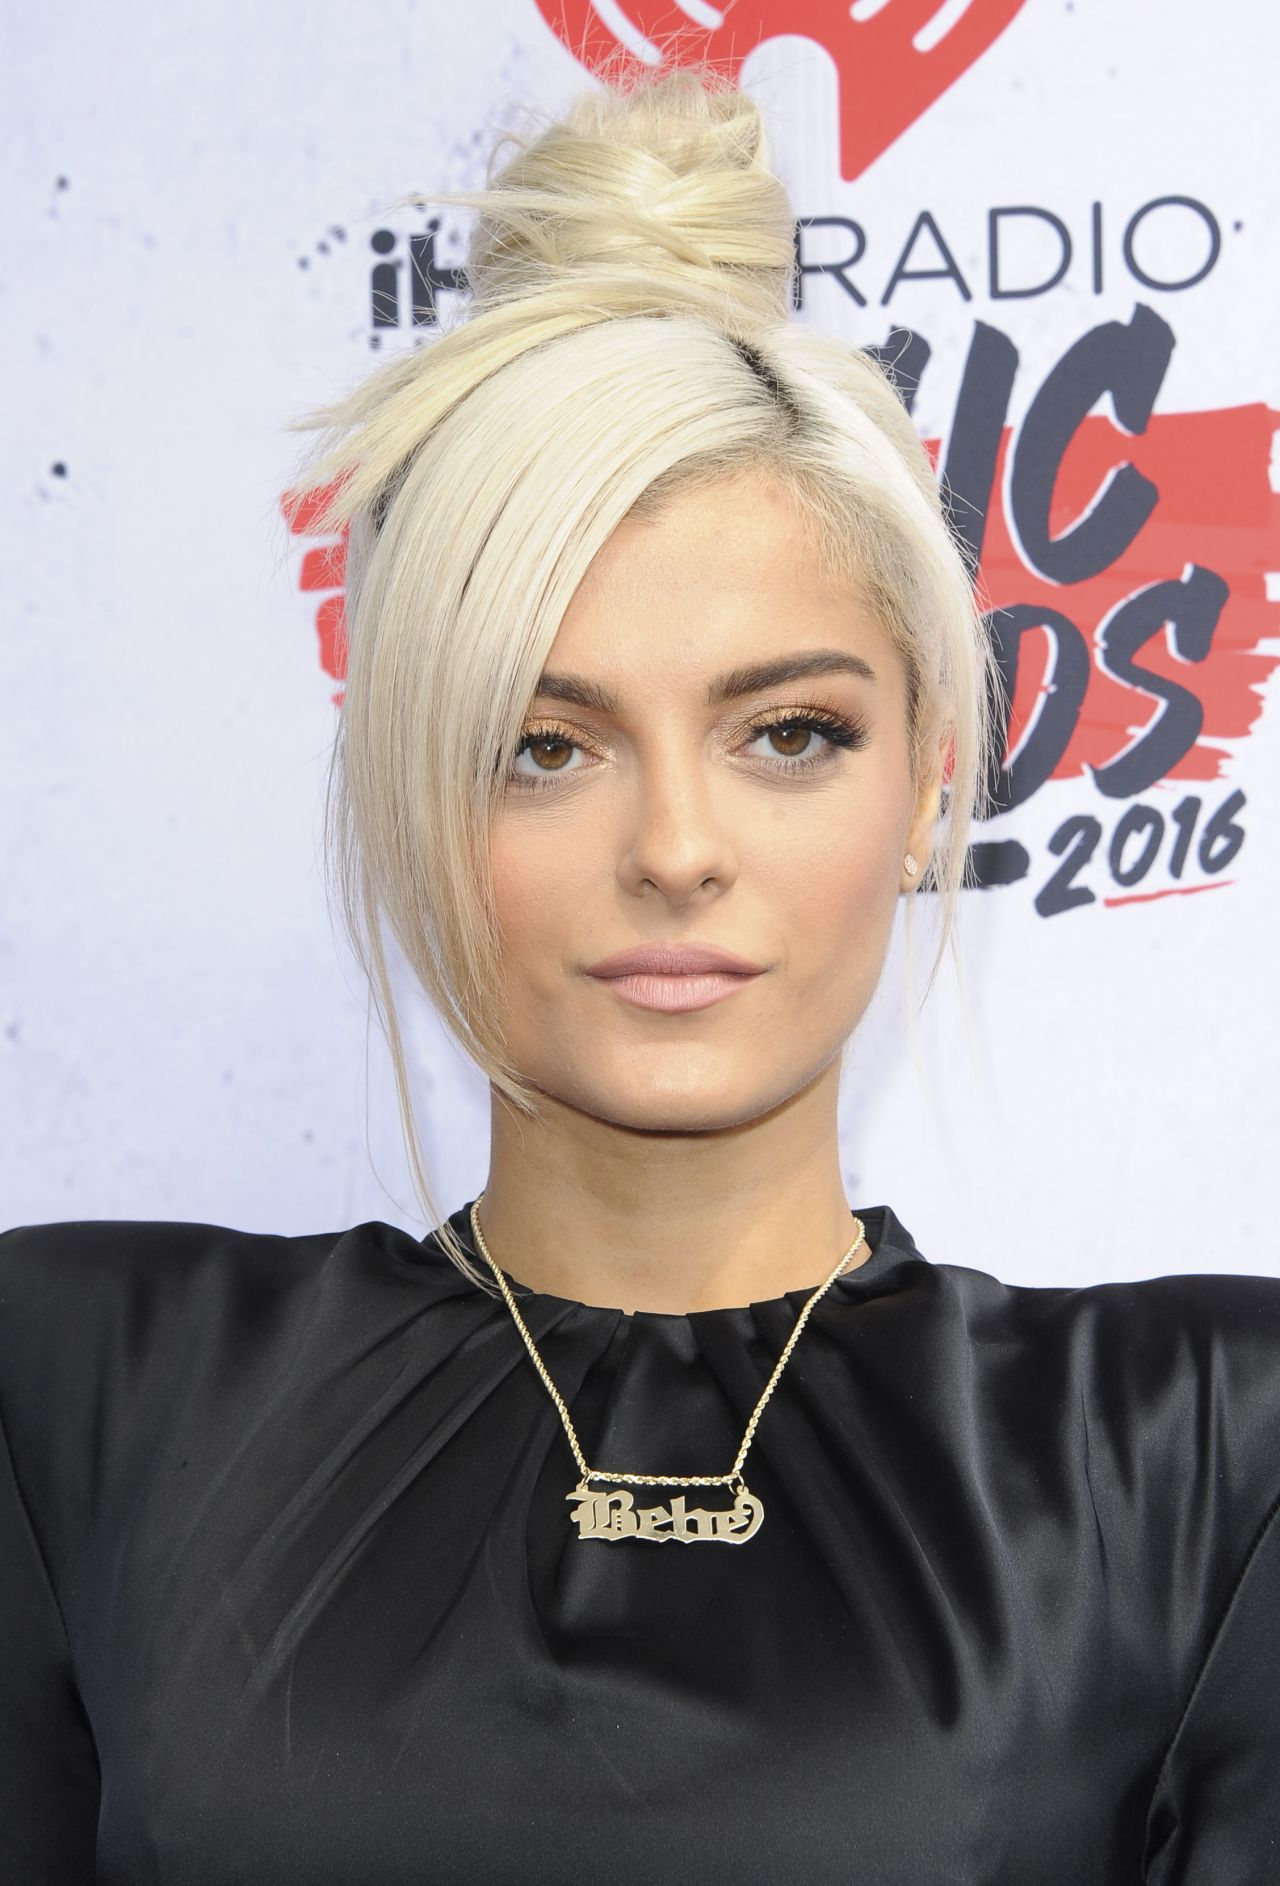 Bebe Rexha Iheartradio Music Awards 2016 Red Carpet Inglewood 508397